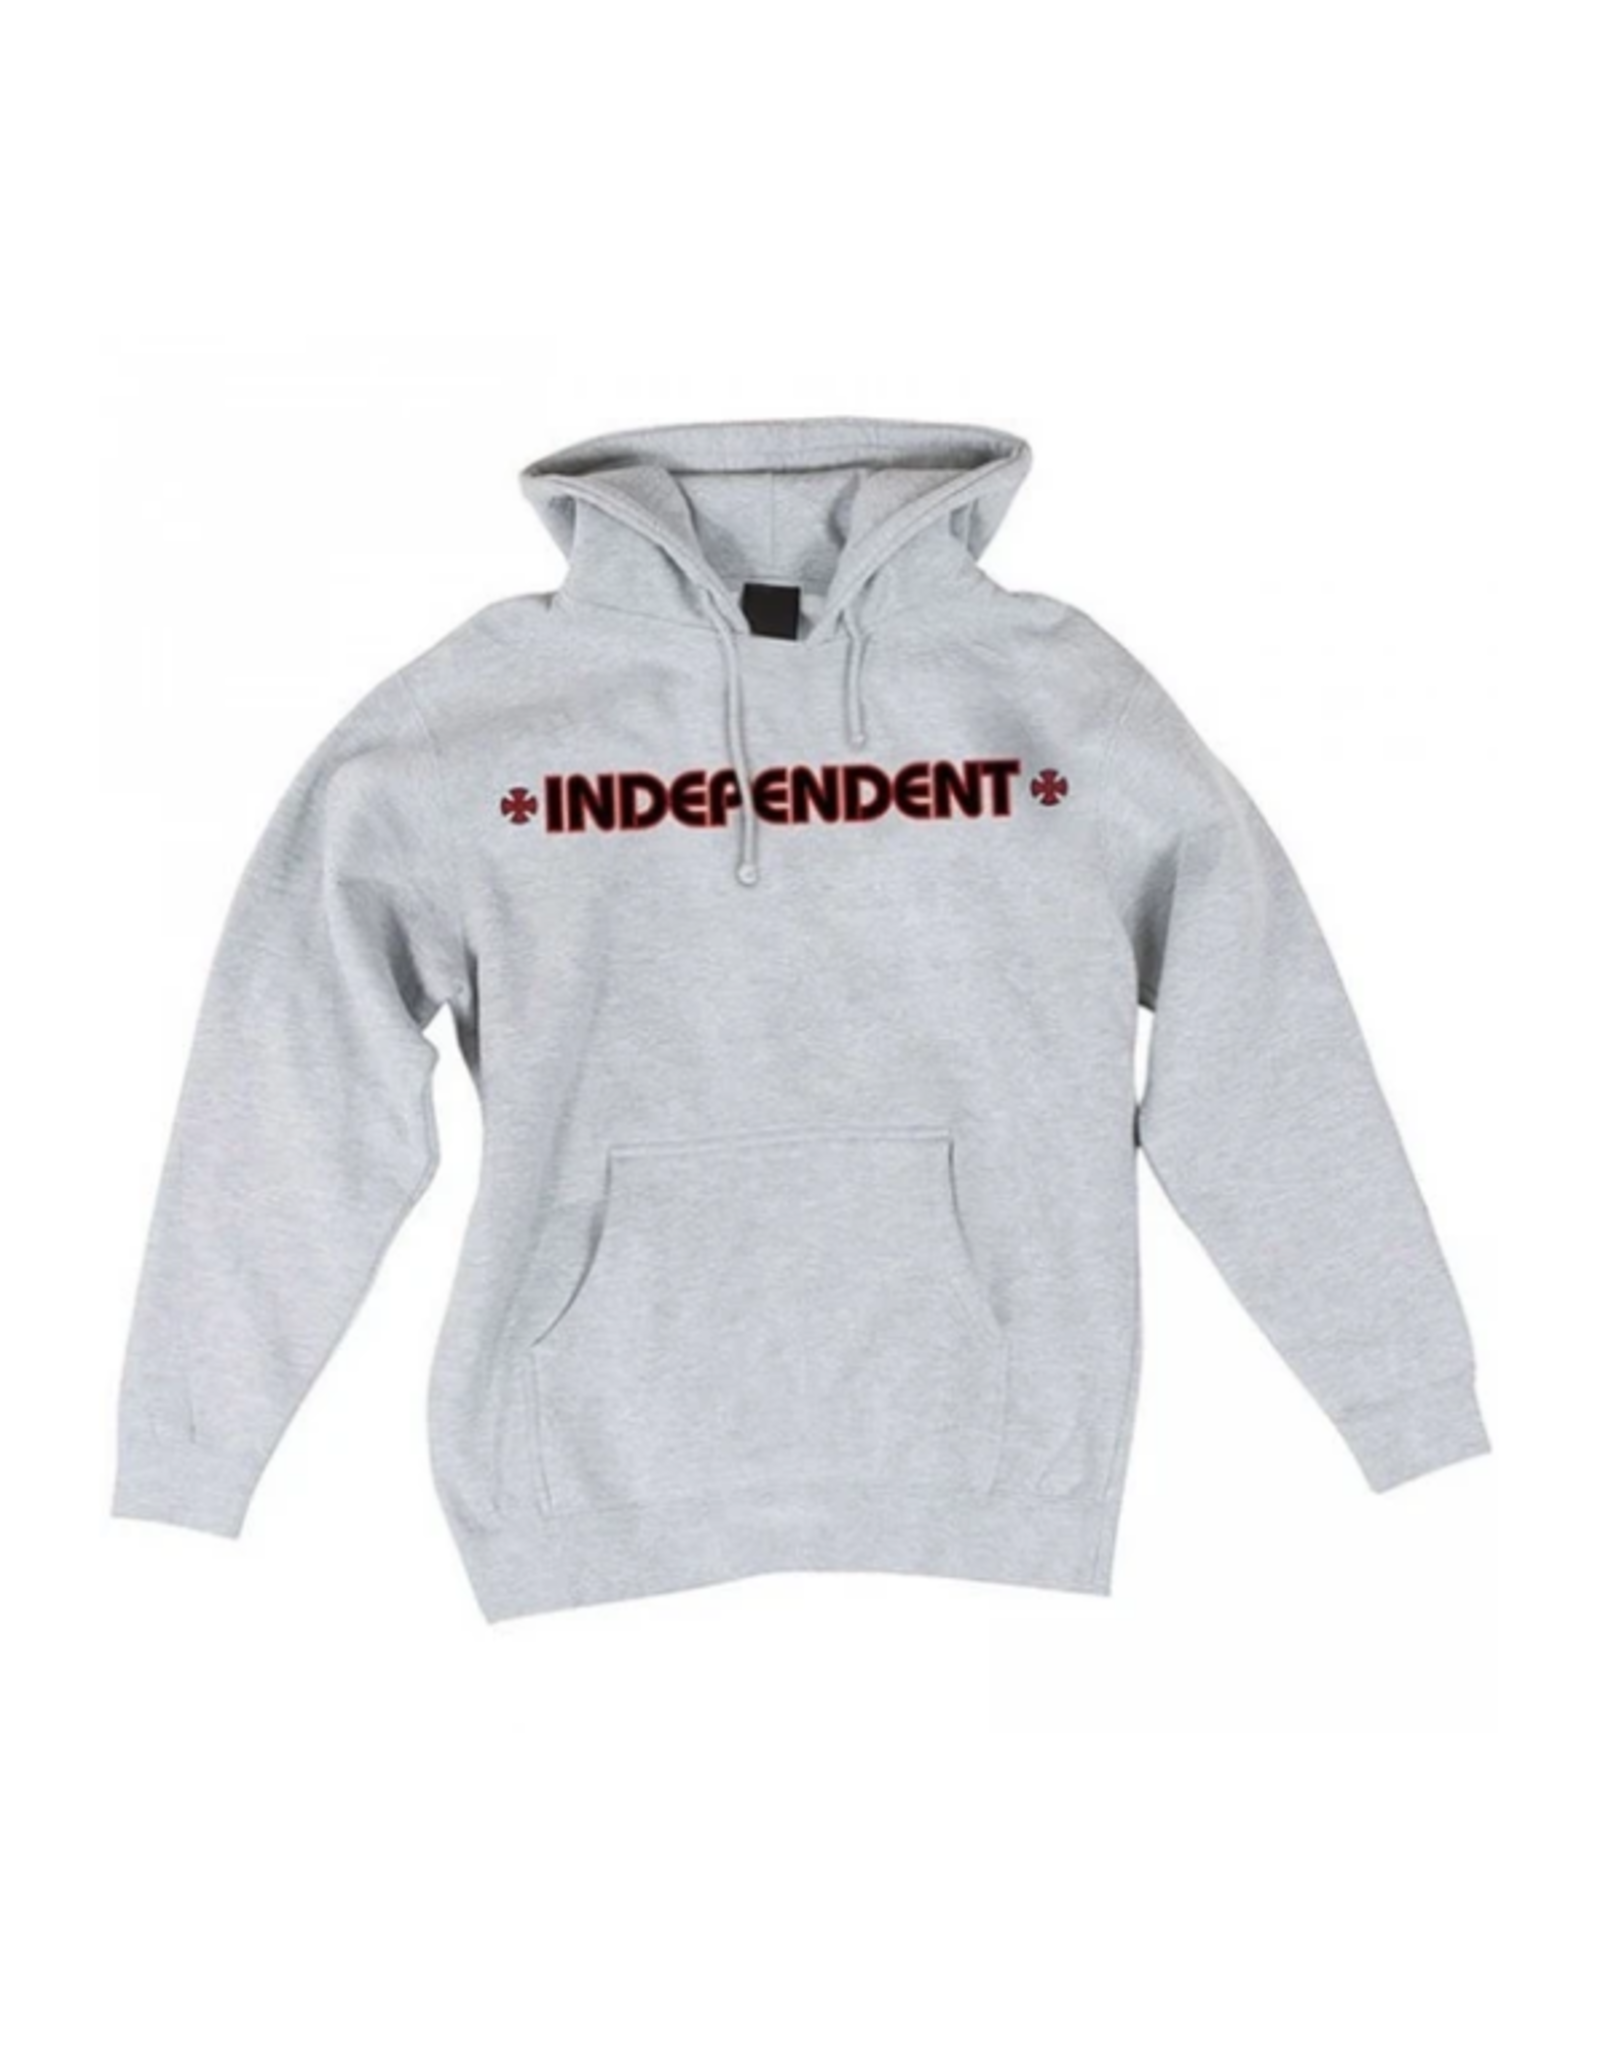 Independent Bar/Cross Hoodie - Heather Grey